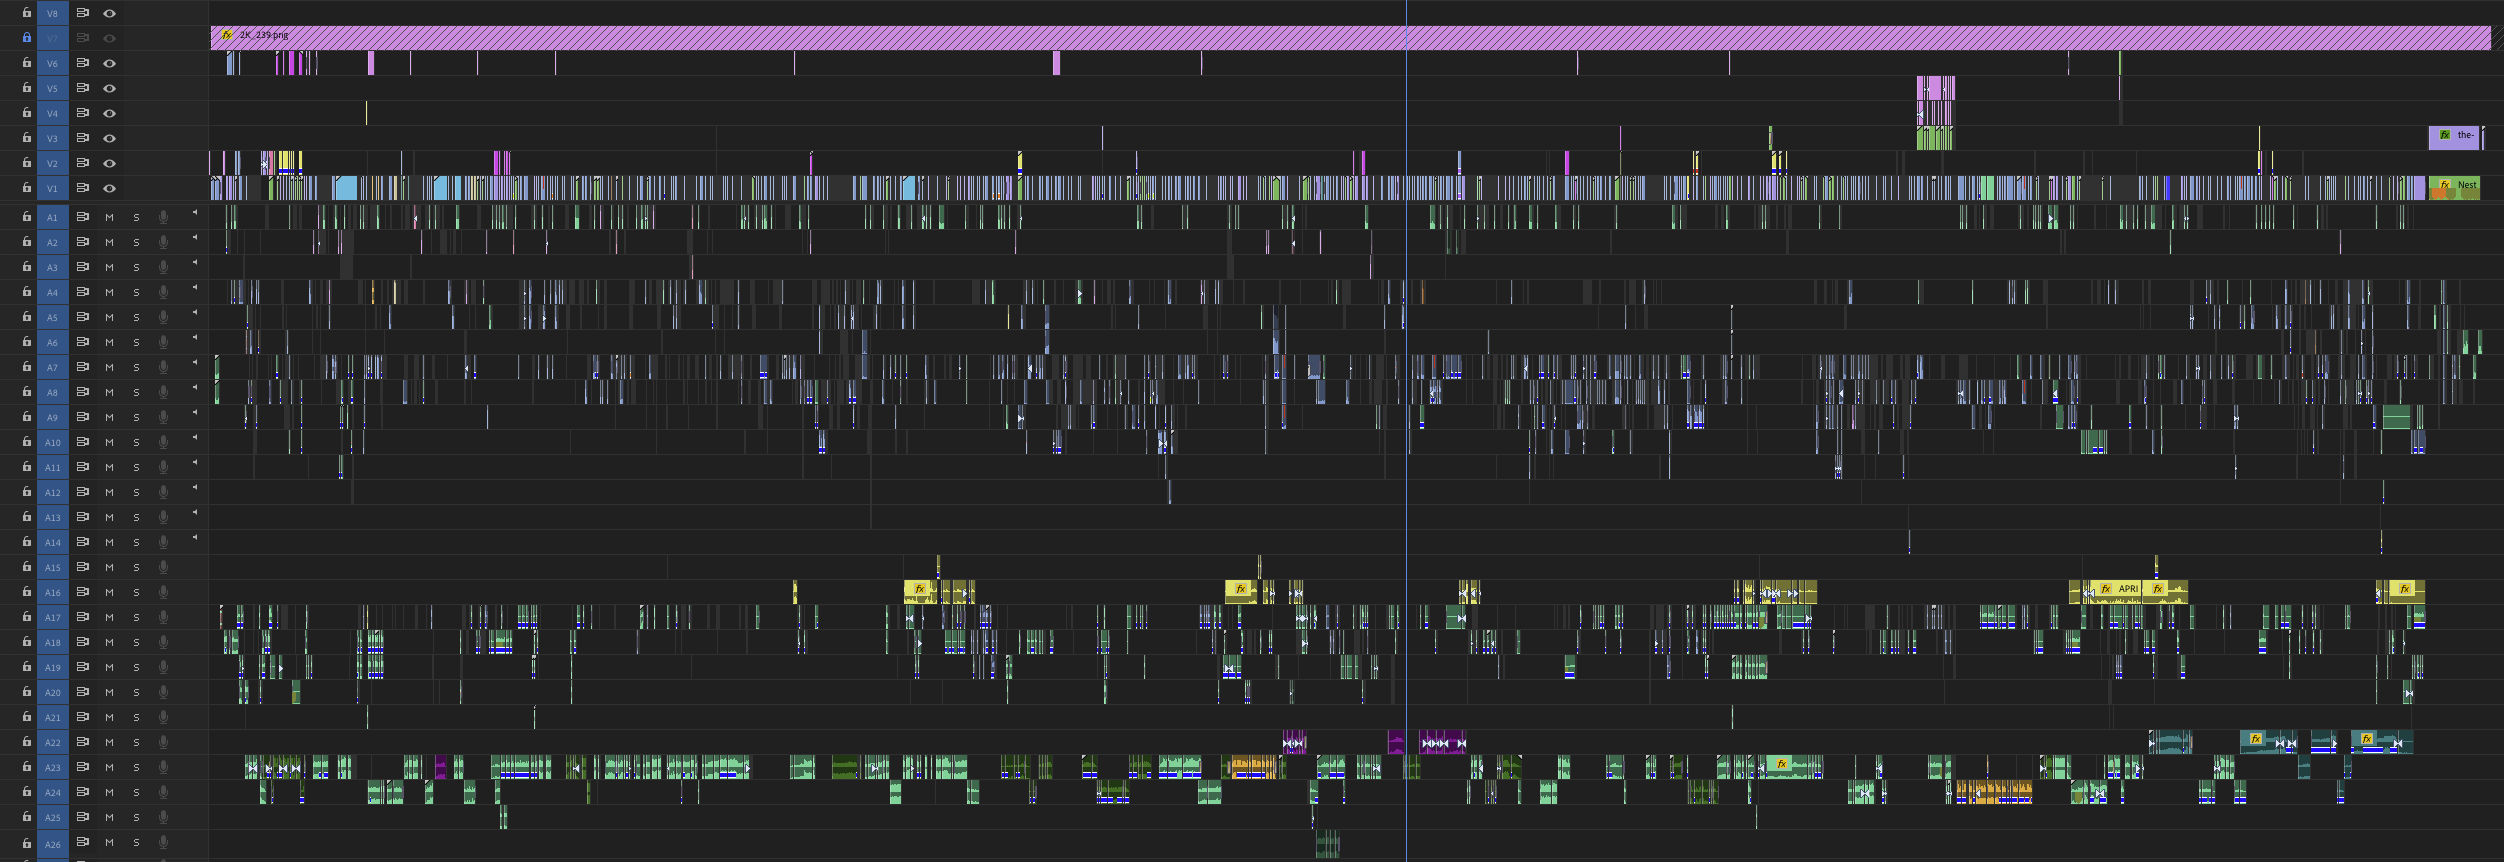 Amy Overbeck's Adobe Premiere Pro timeline screenshot.